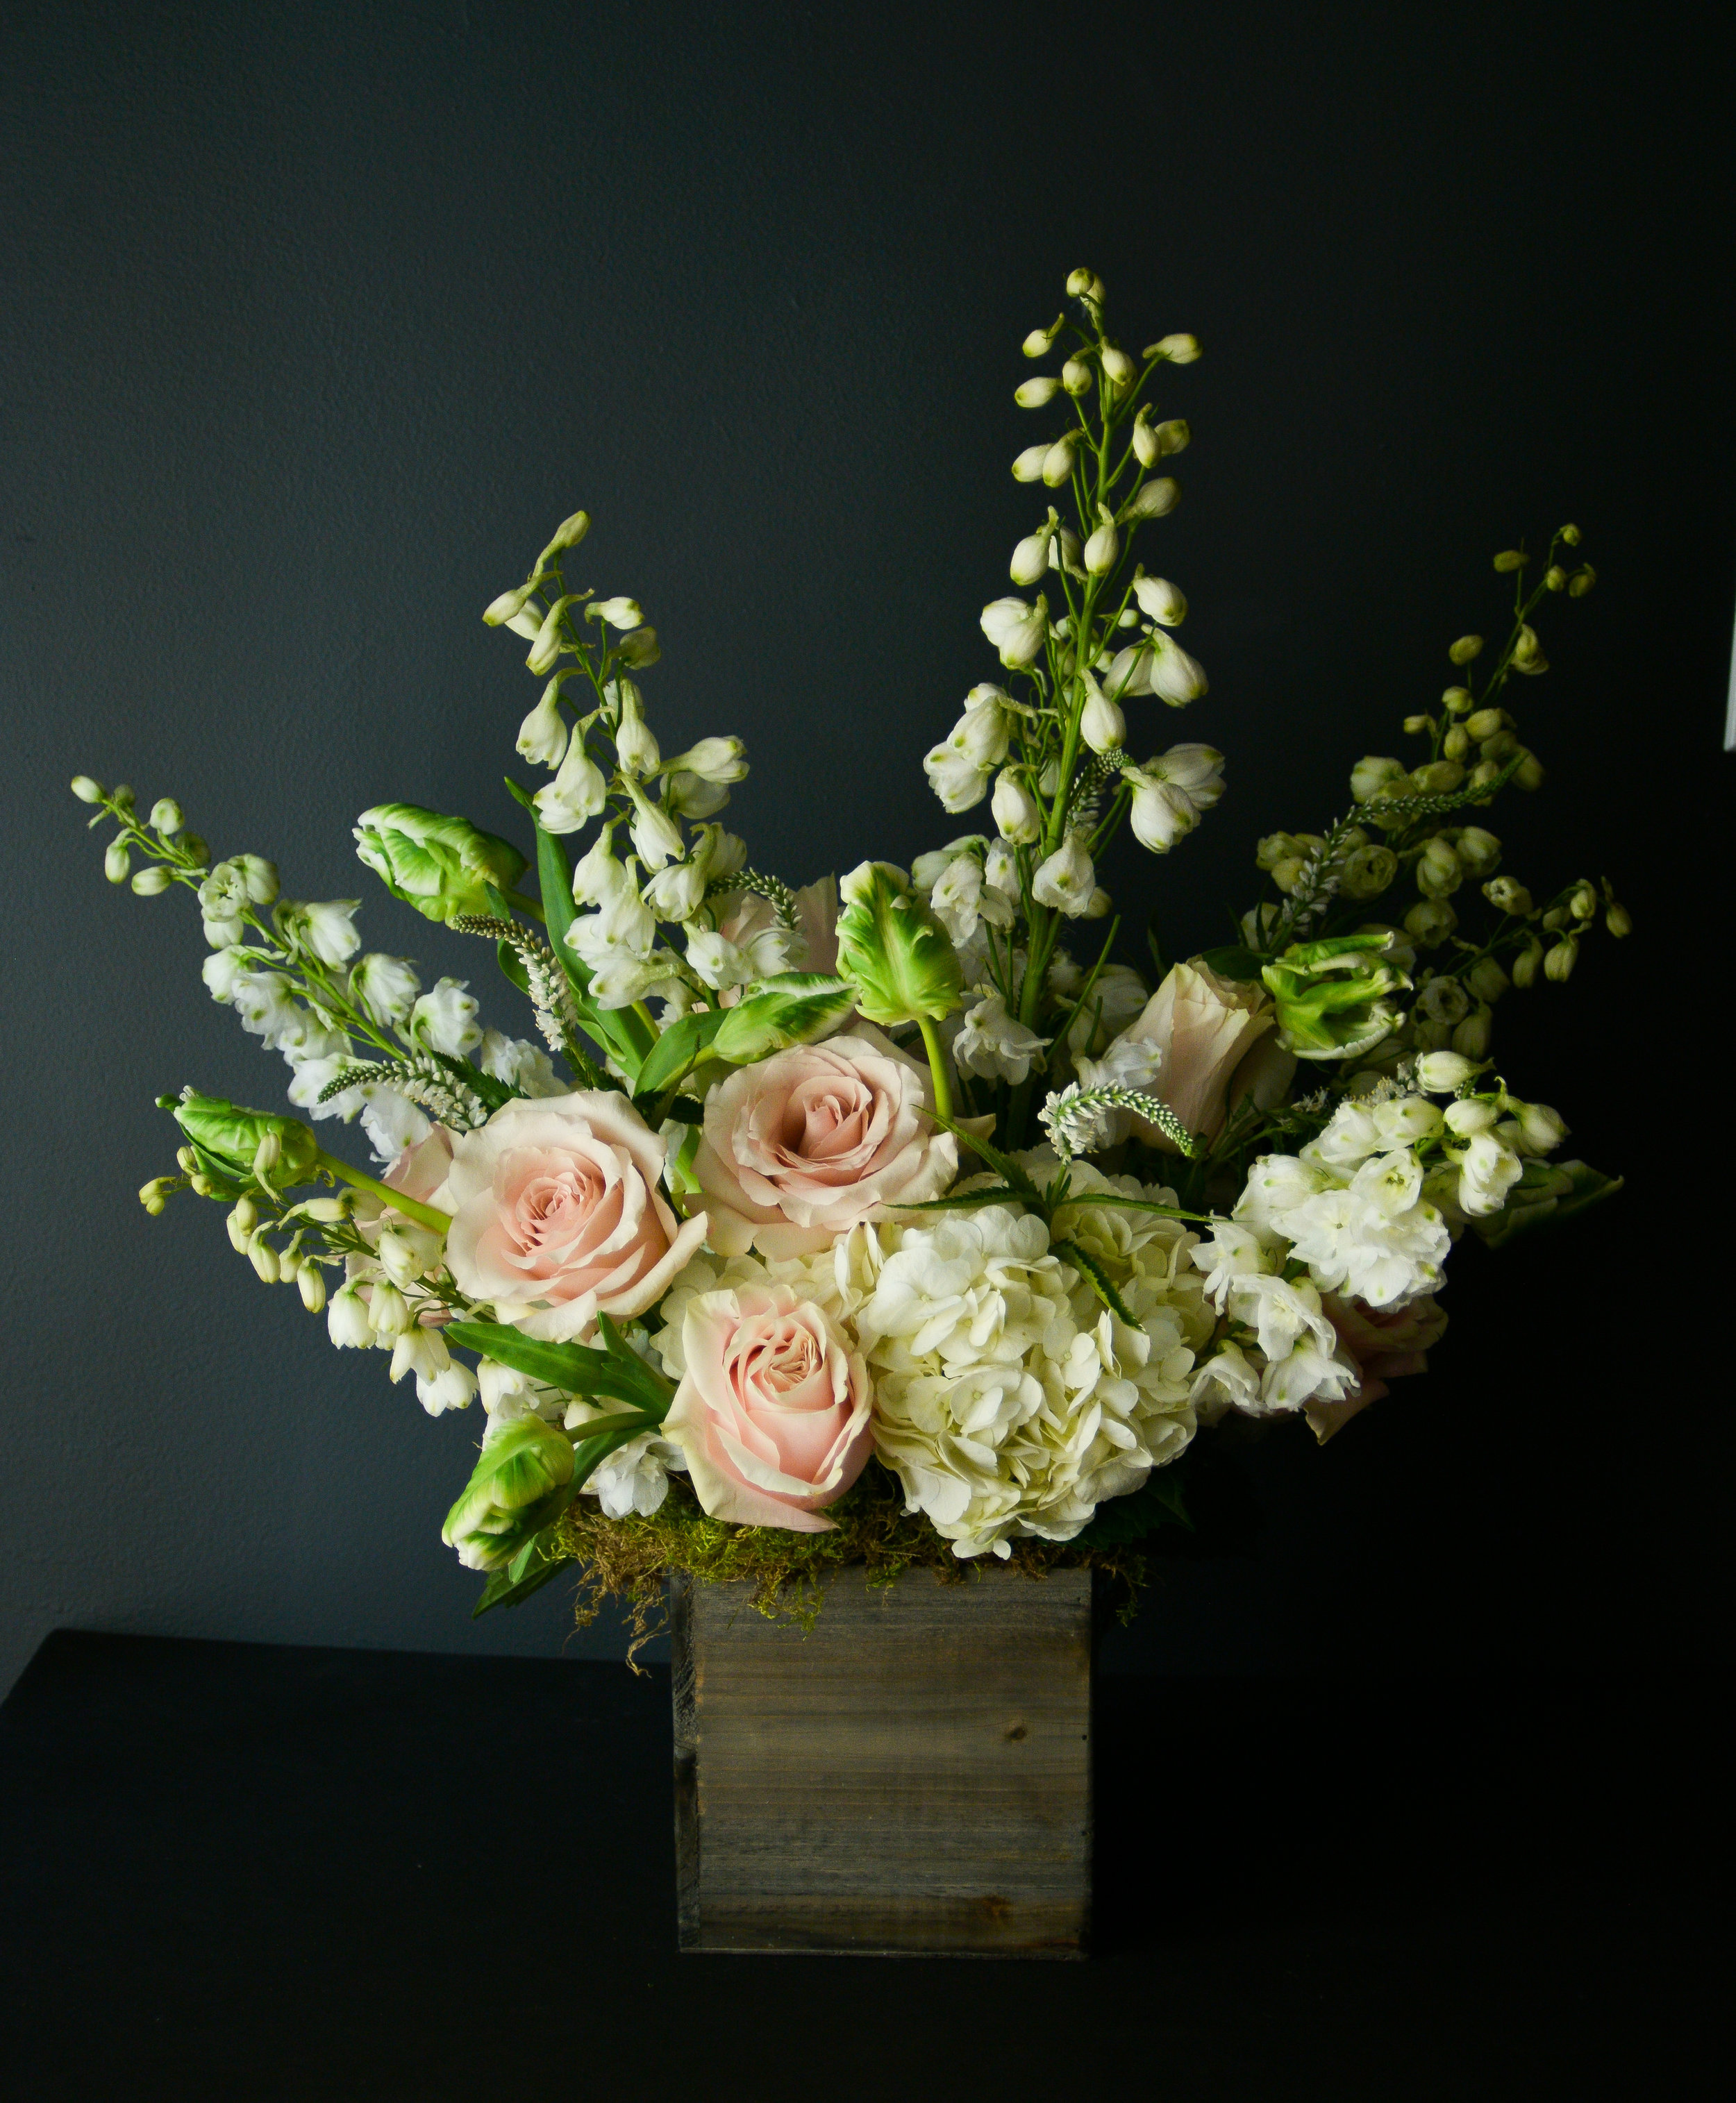 $200 Arrangement   Fills the space, draws the eye, shows off all its curves and edges. Makes a statement! More expensive florals can be used for an extra special feel. Perfect for corporate gifts, funerals, and other special occasions.